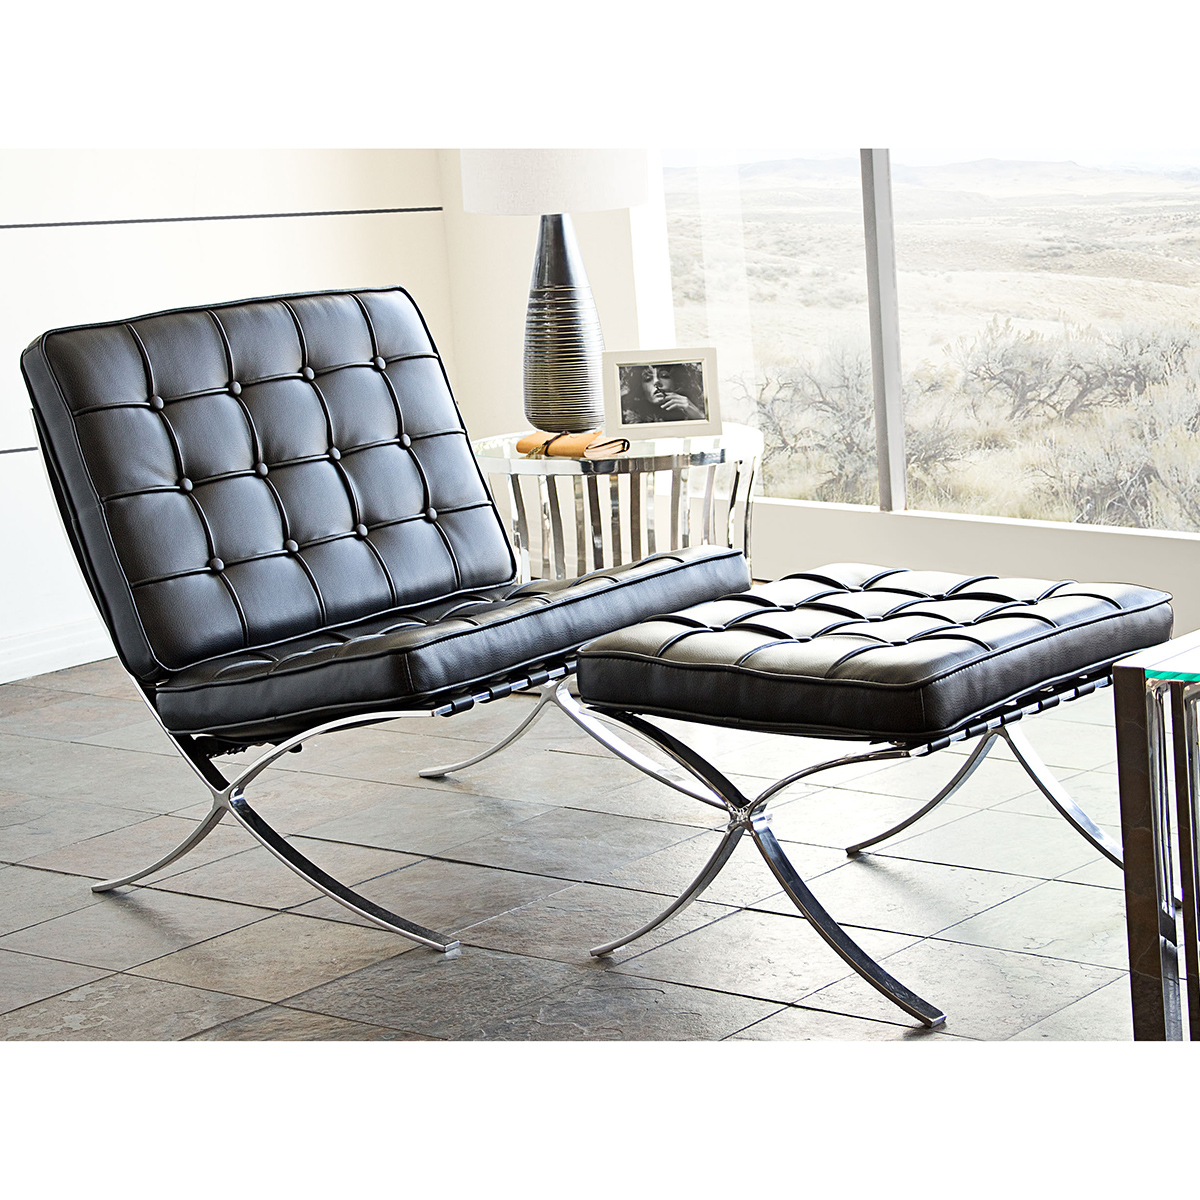 Chair And Ottoman Set Cordoba Tufted Chair Ottoman Set W Stainless Steel Frame In Black Leather By Diamond Sofa